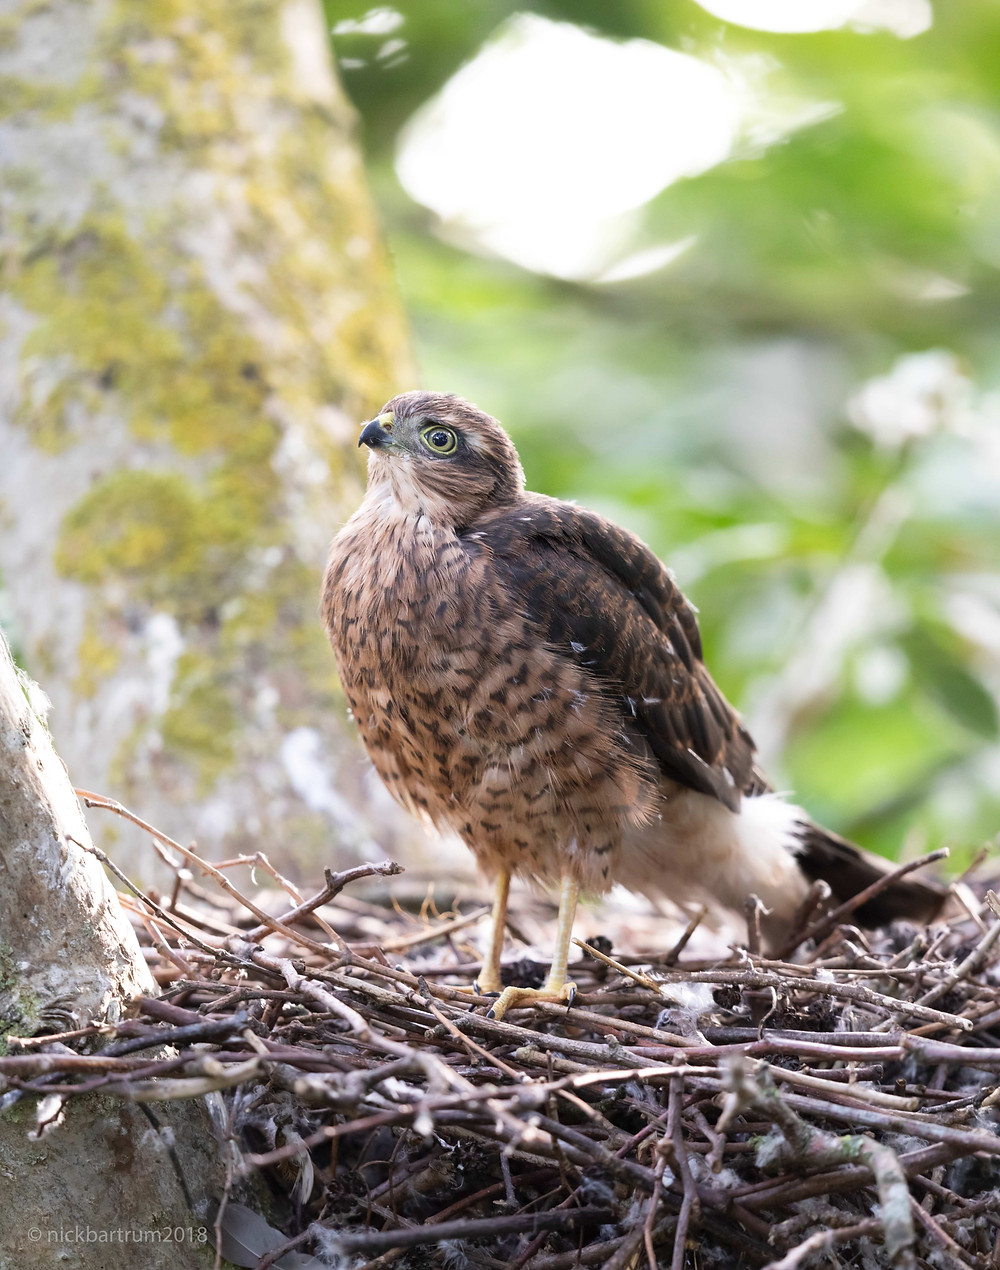 One of the juvenile hawks stirring after hearing the adult's call.